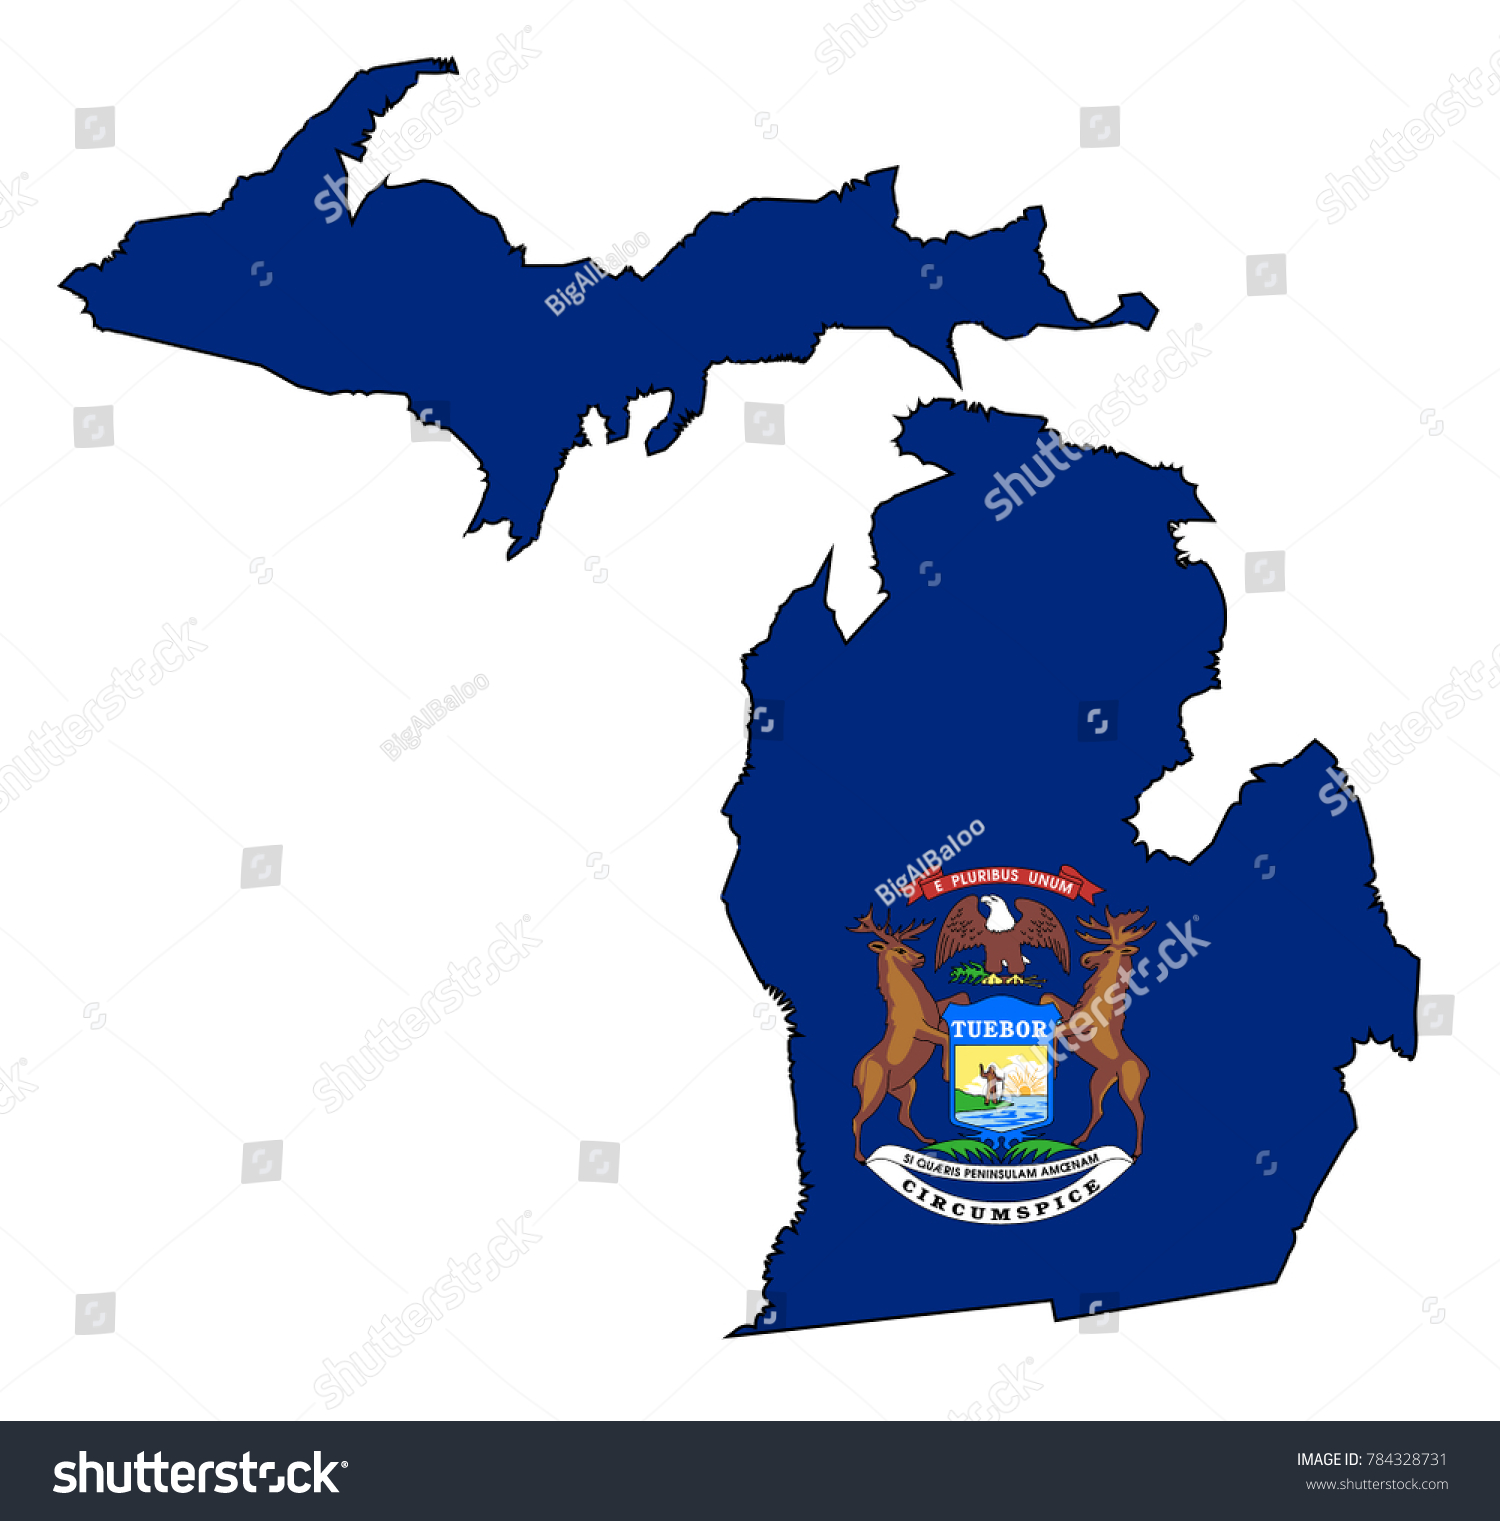 Outline Map State Michigan Map Inset Stock Photo (Photo, Vector ...